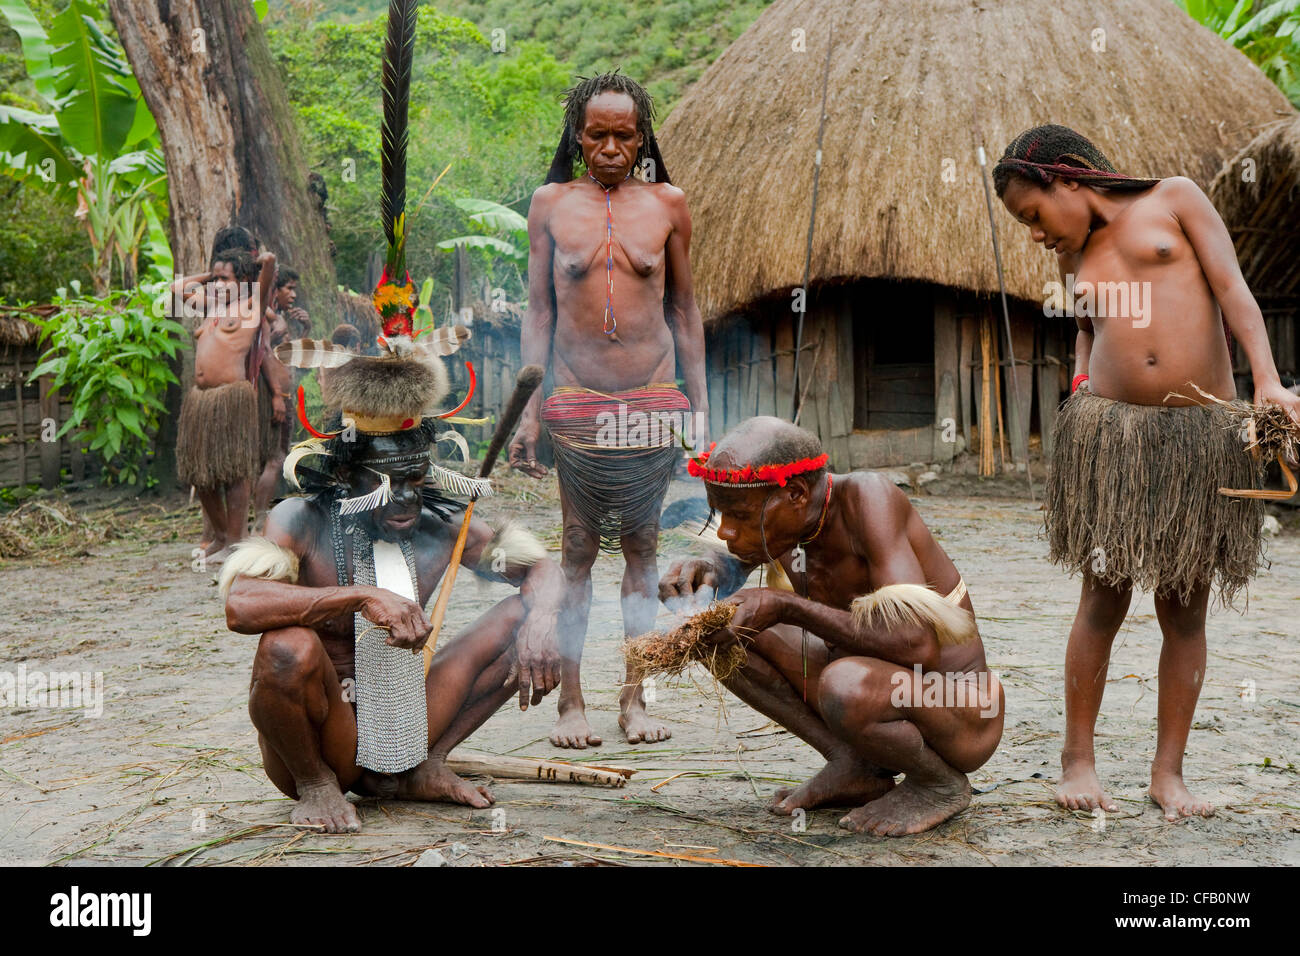 Dani tribespeople making fire in their traditional village, New Guinea, Indonesia. - Stock Image